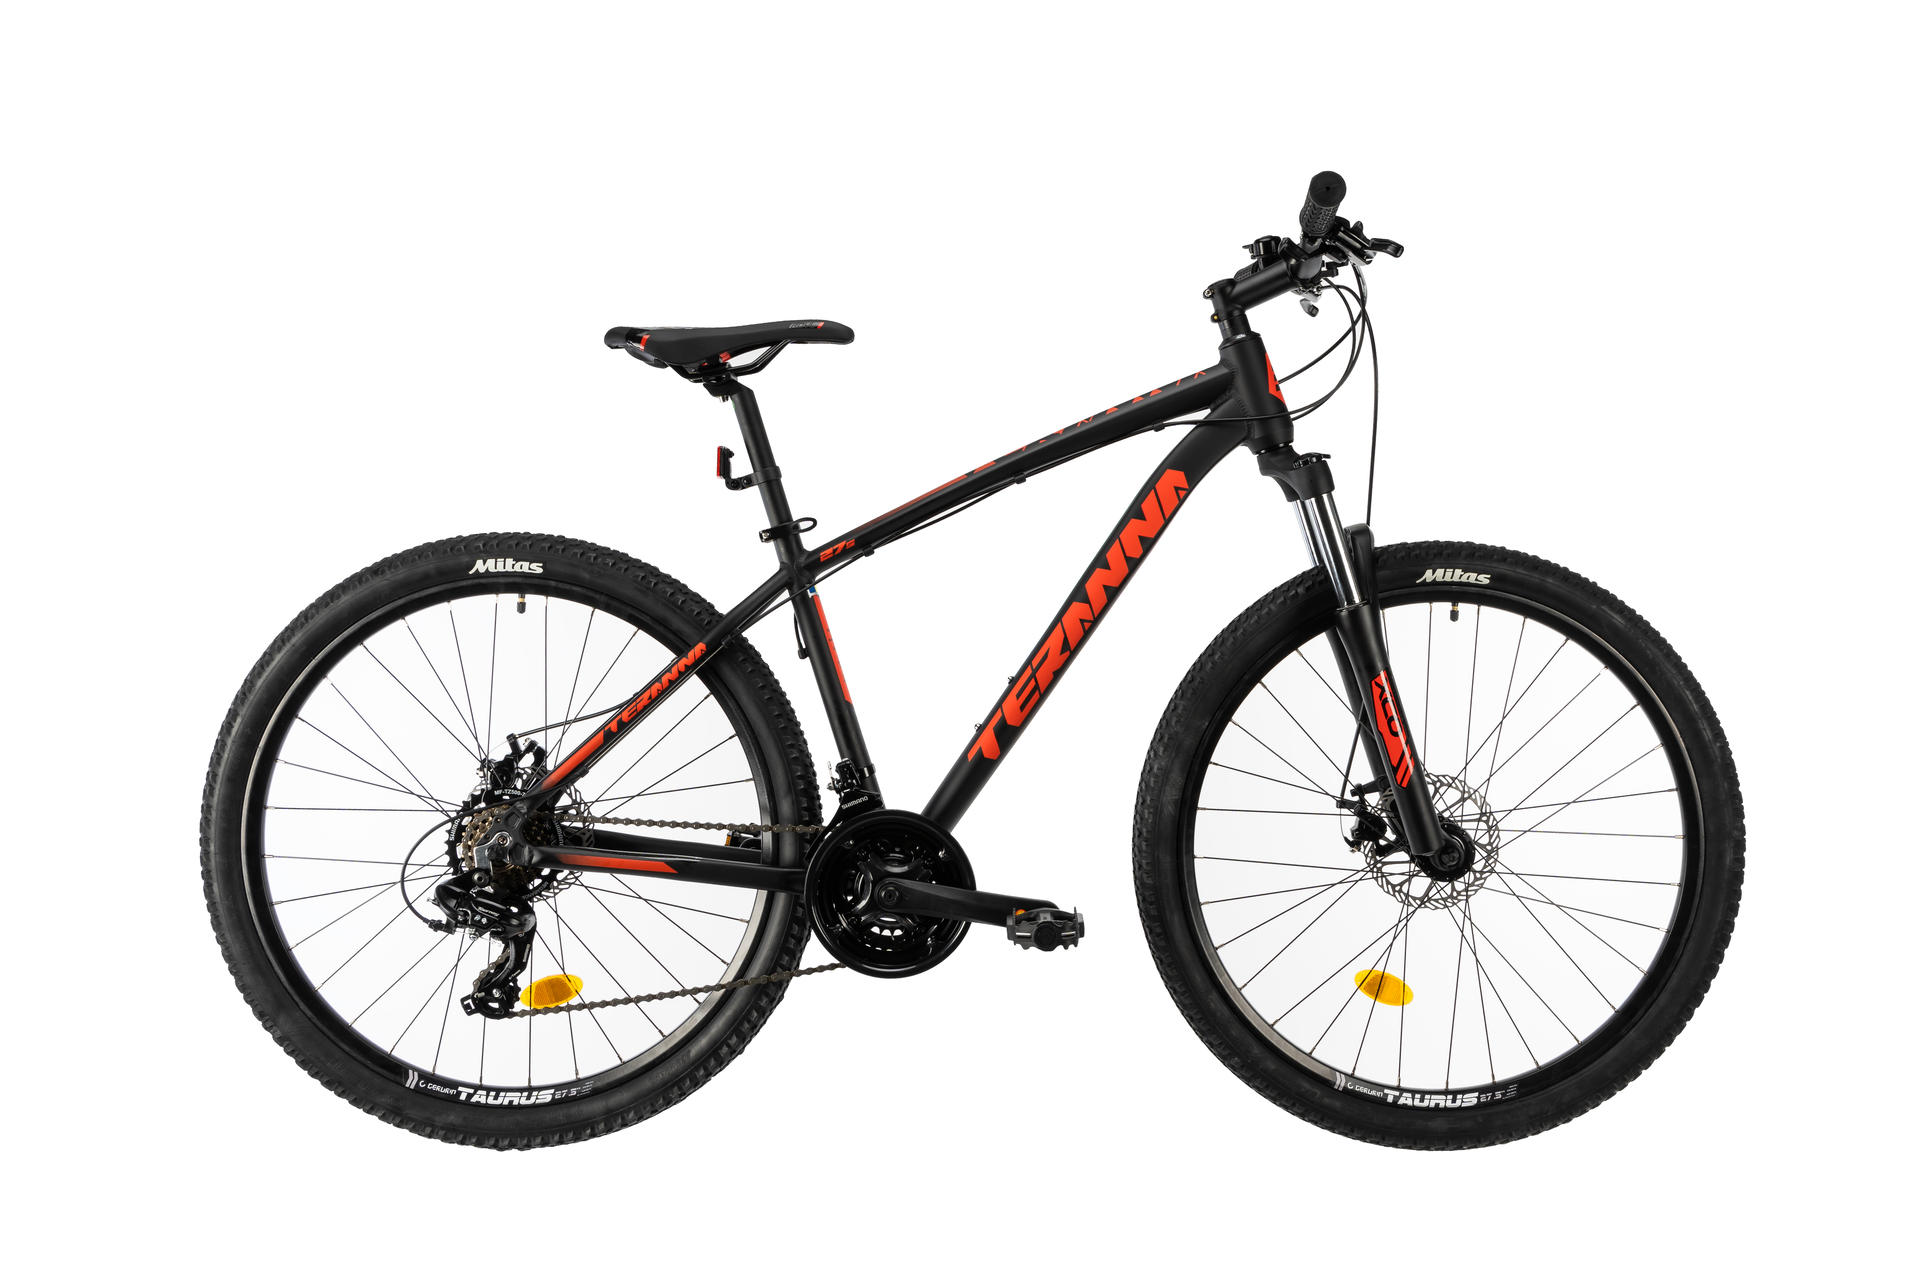 Mountain bike DHS 2725 Black 420mm